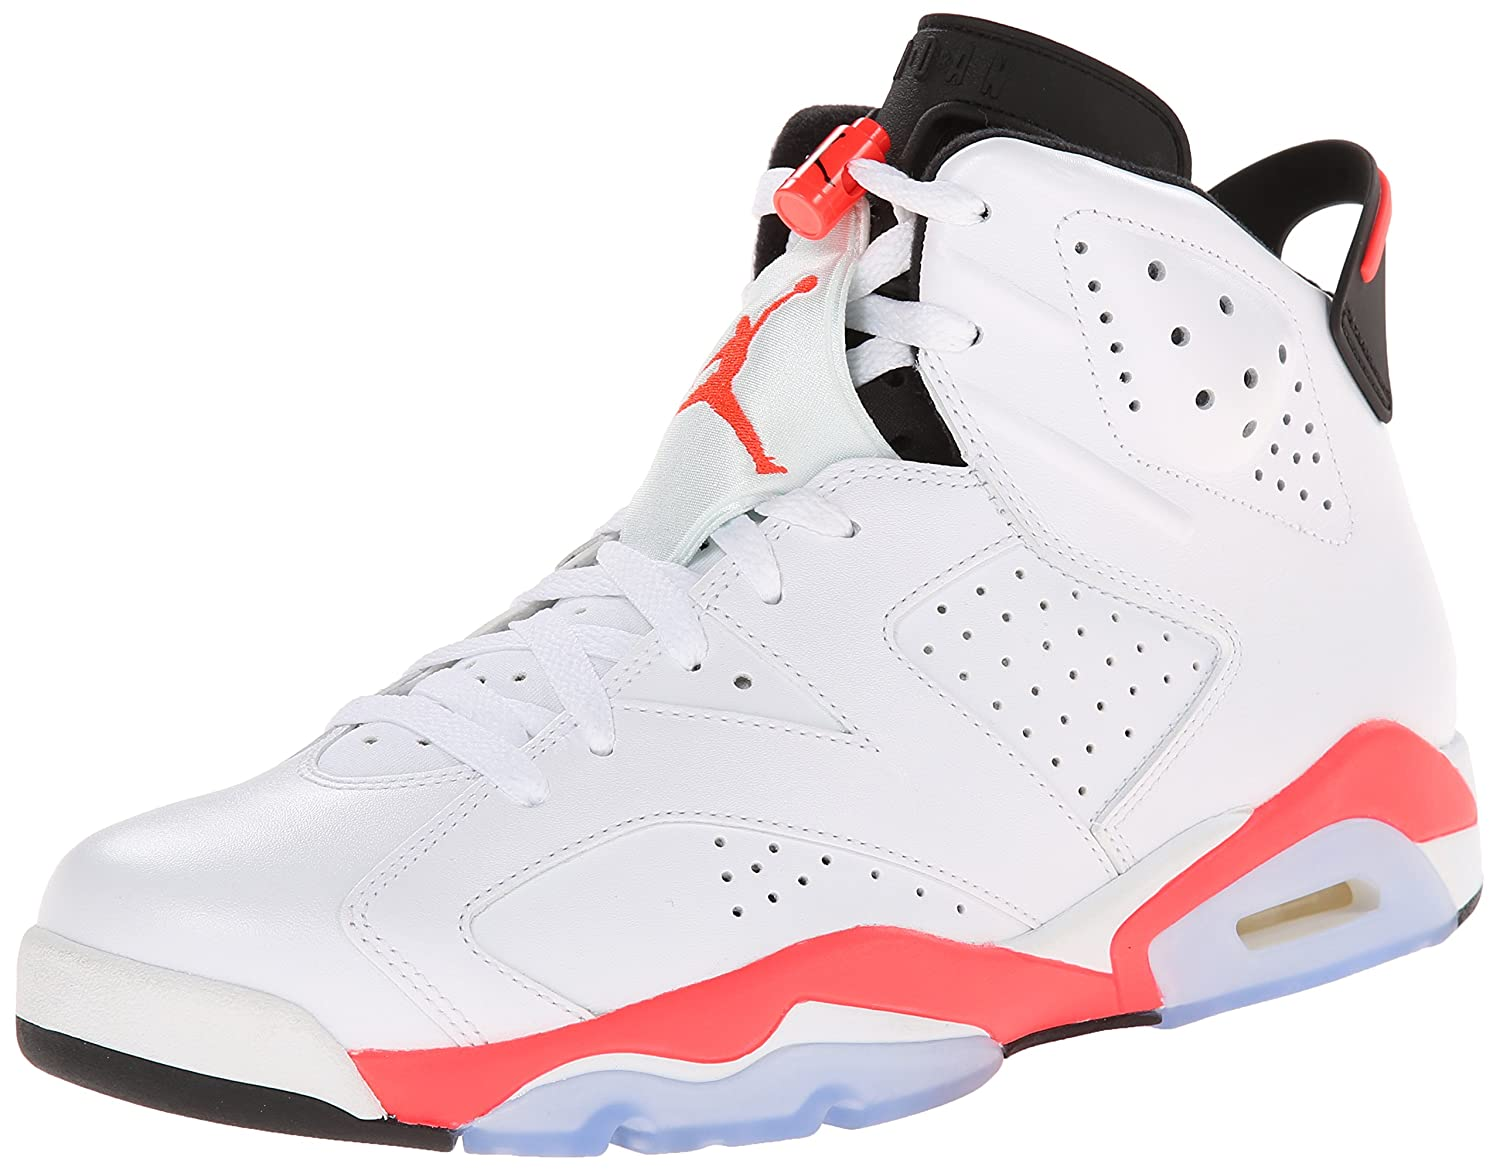 (ジョーダン) Jordan エア  6 レトロ インフラレッド シューズ Air Jordan 6 Retro INFRARED Wht/I.Red/Blk バスケットボール ストリート B003ZHVU8G 10.5 D(M) US|White/Infrared-black White/Infrared-black 10.5 D(M) US